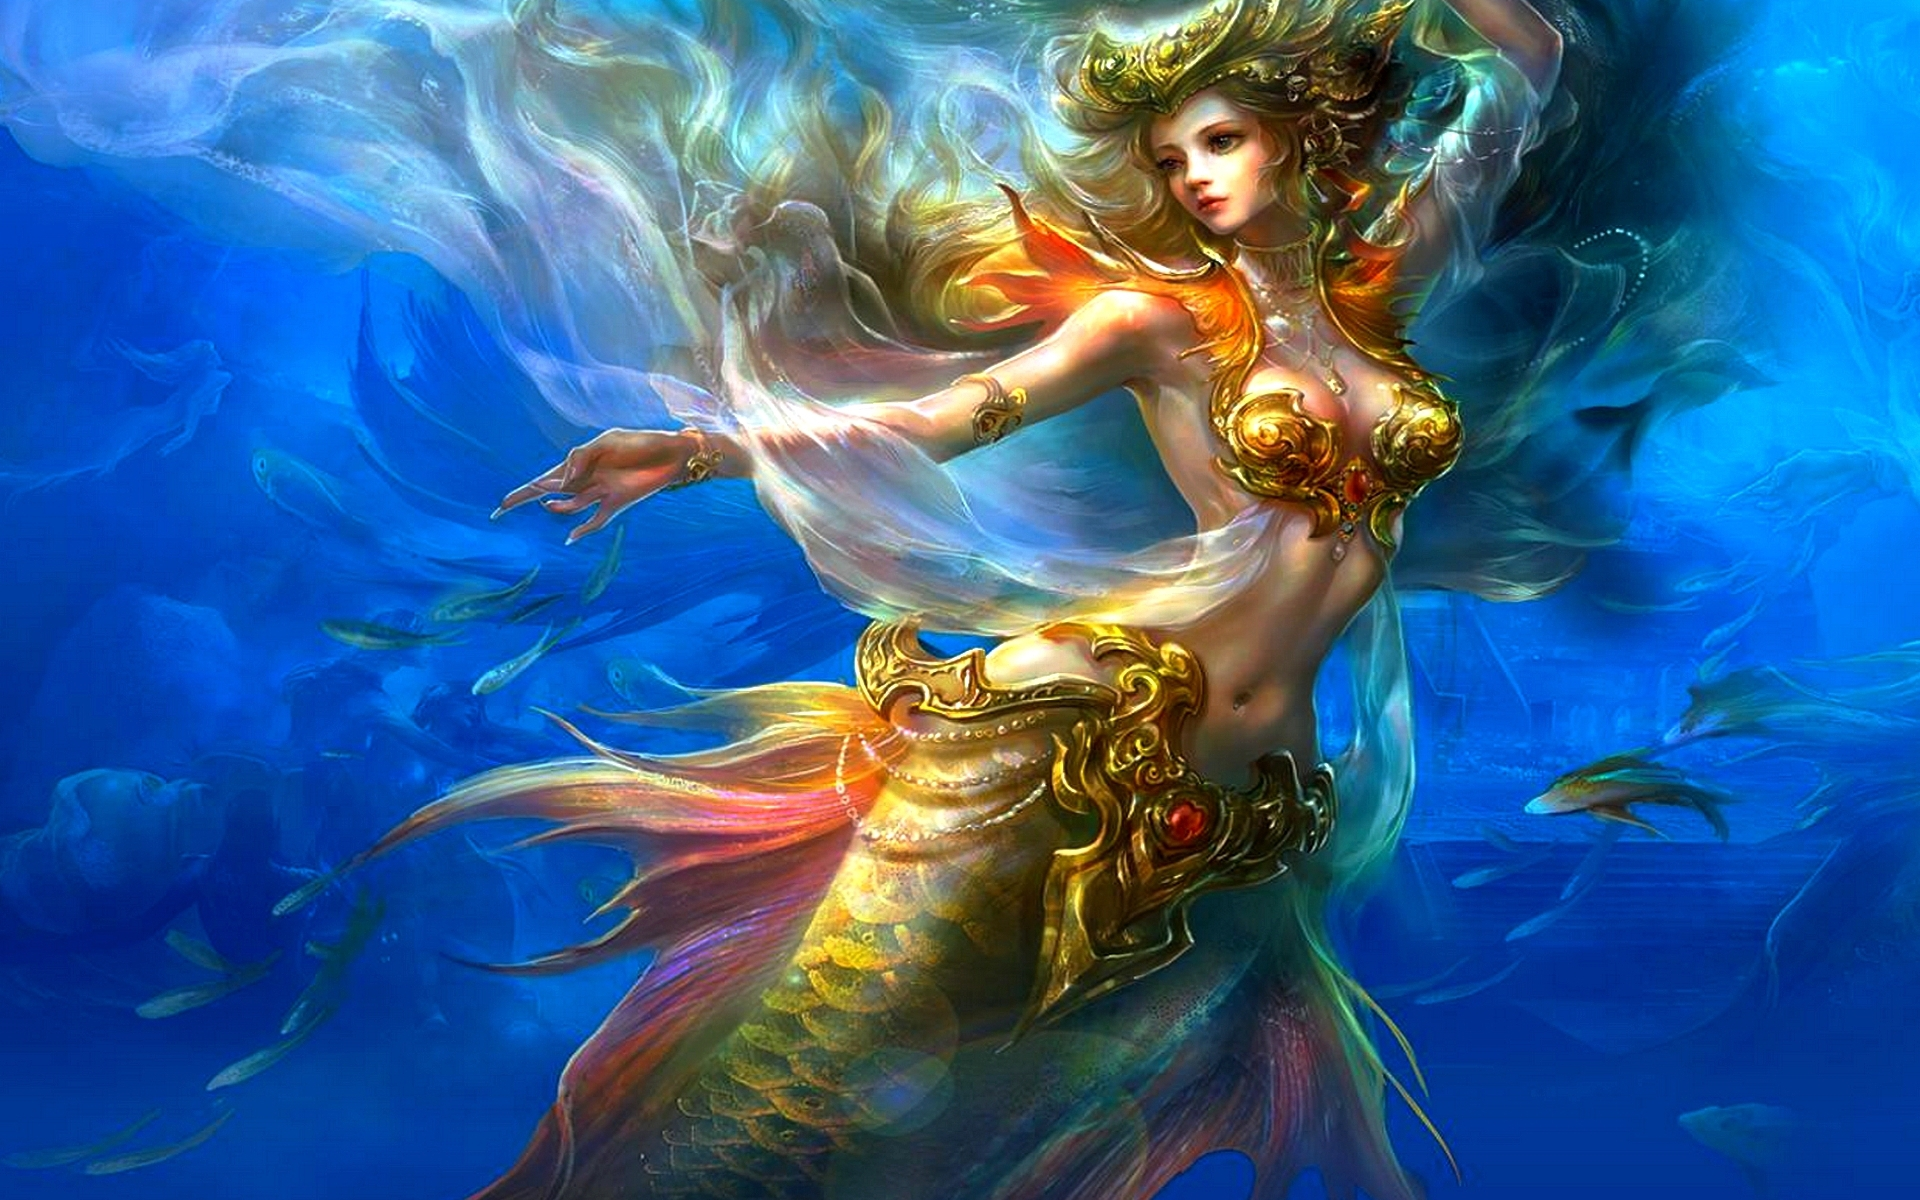 mermaid wallpaper for computer - wallpapersafari